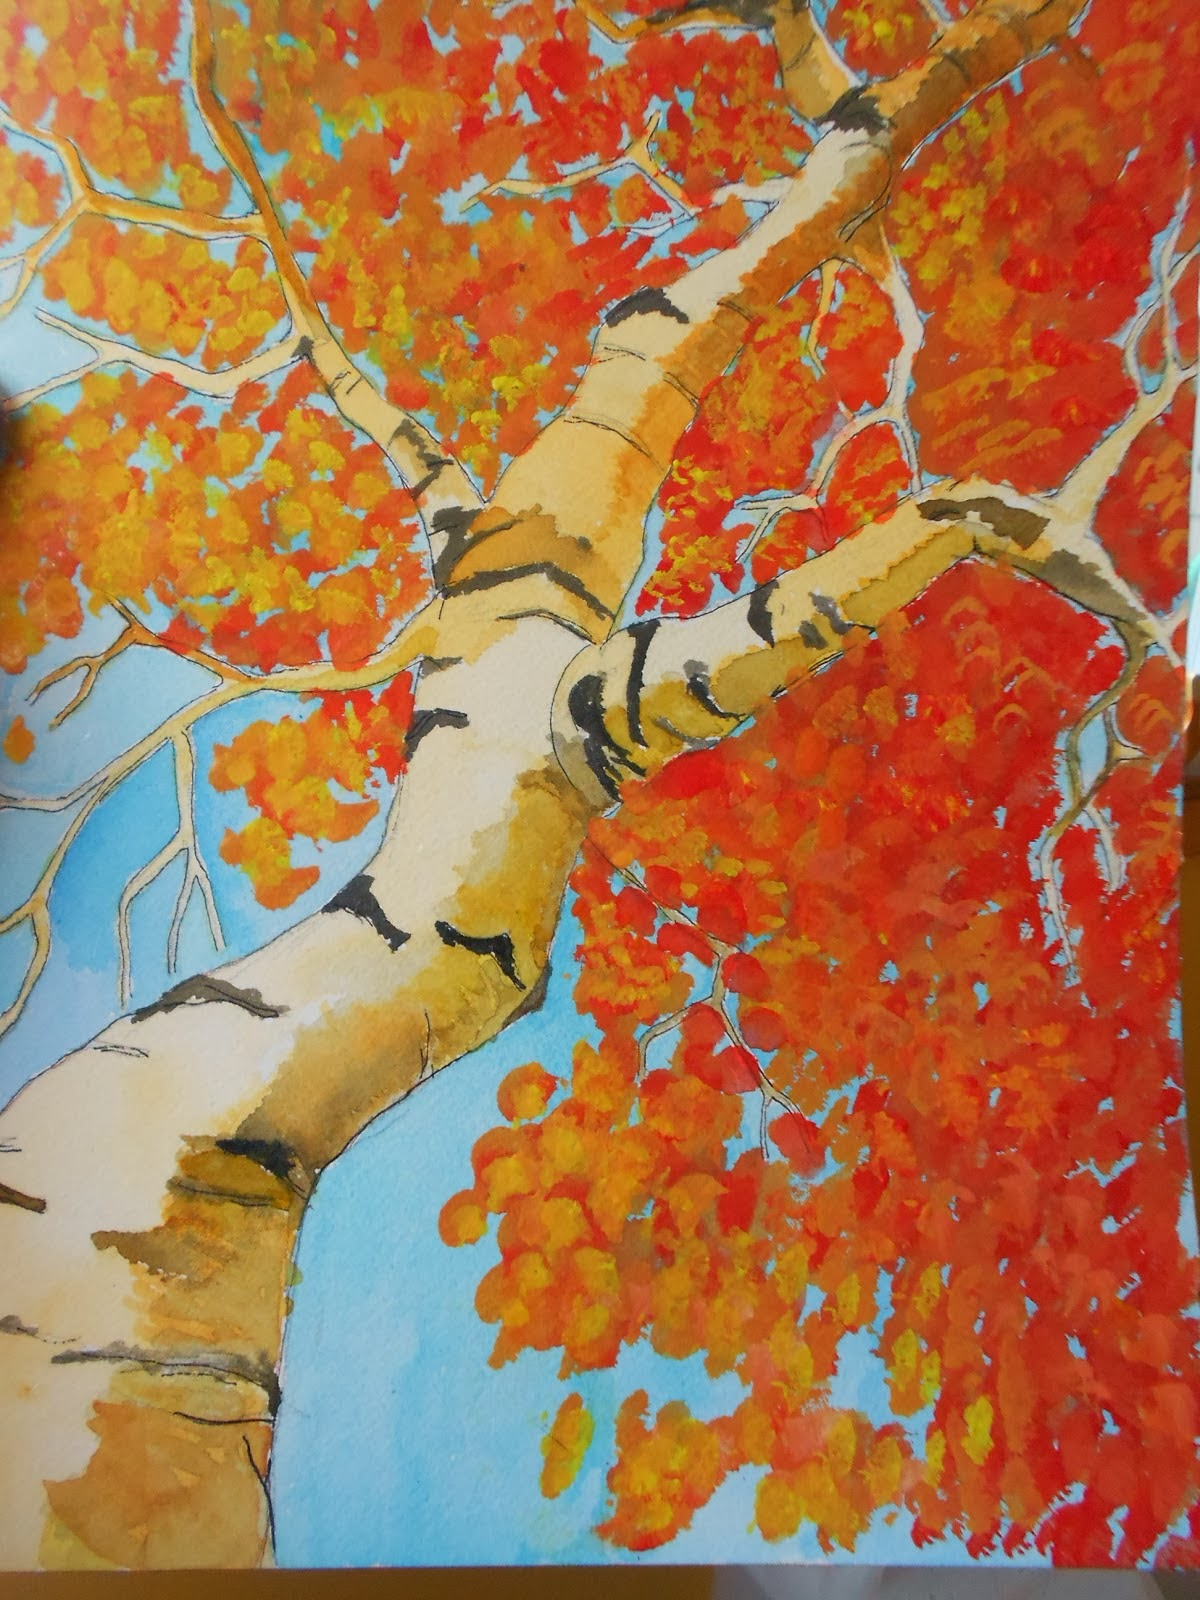 Autumn Landscape Art Project Ideas | ArtMuse67